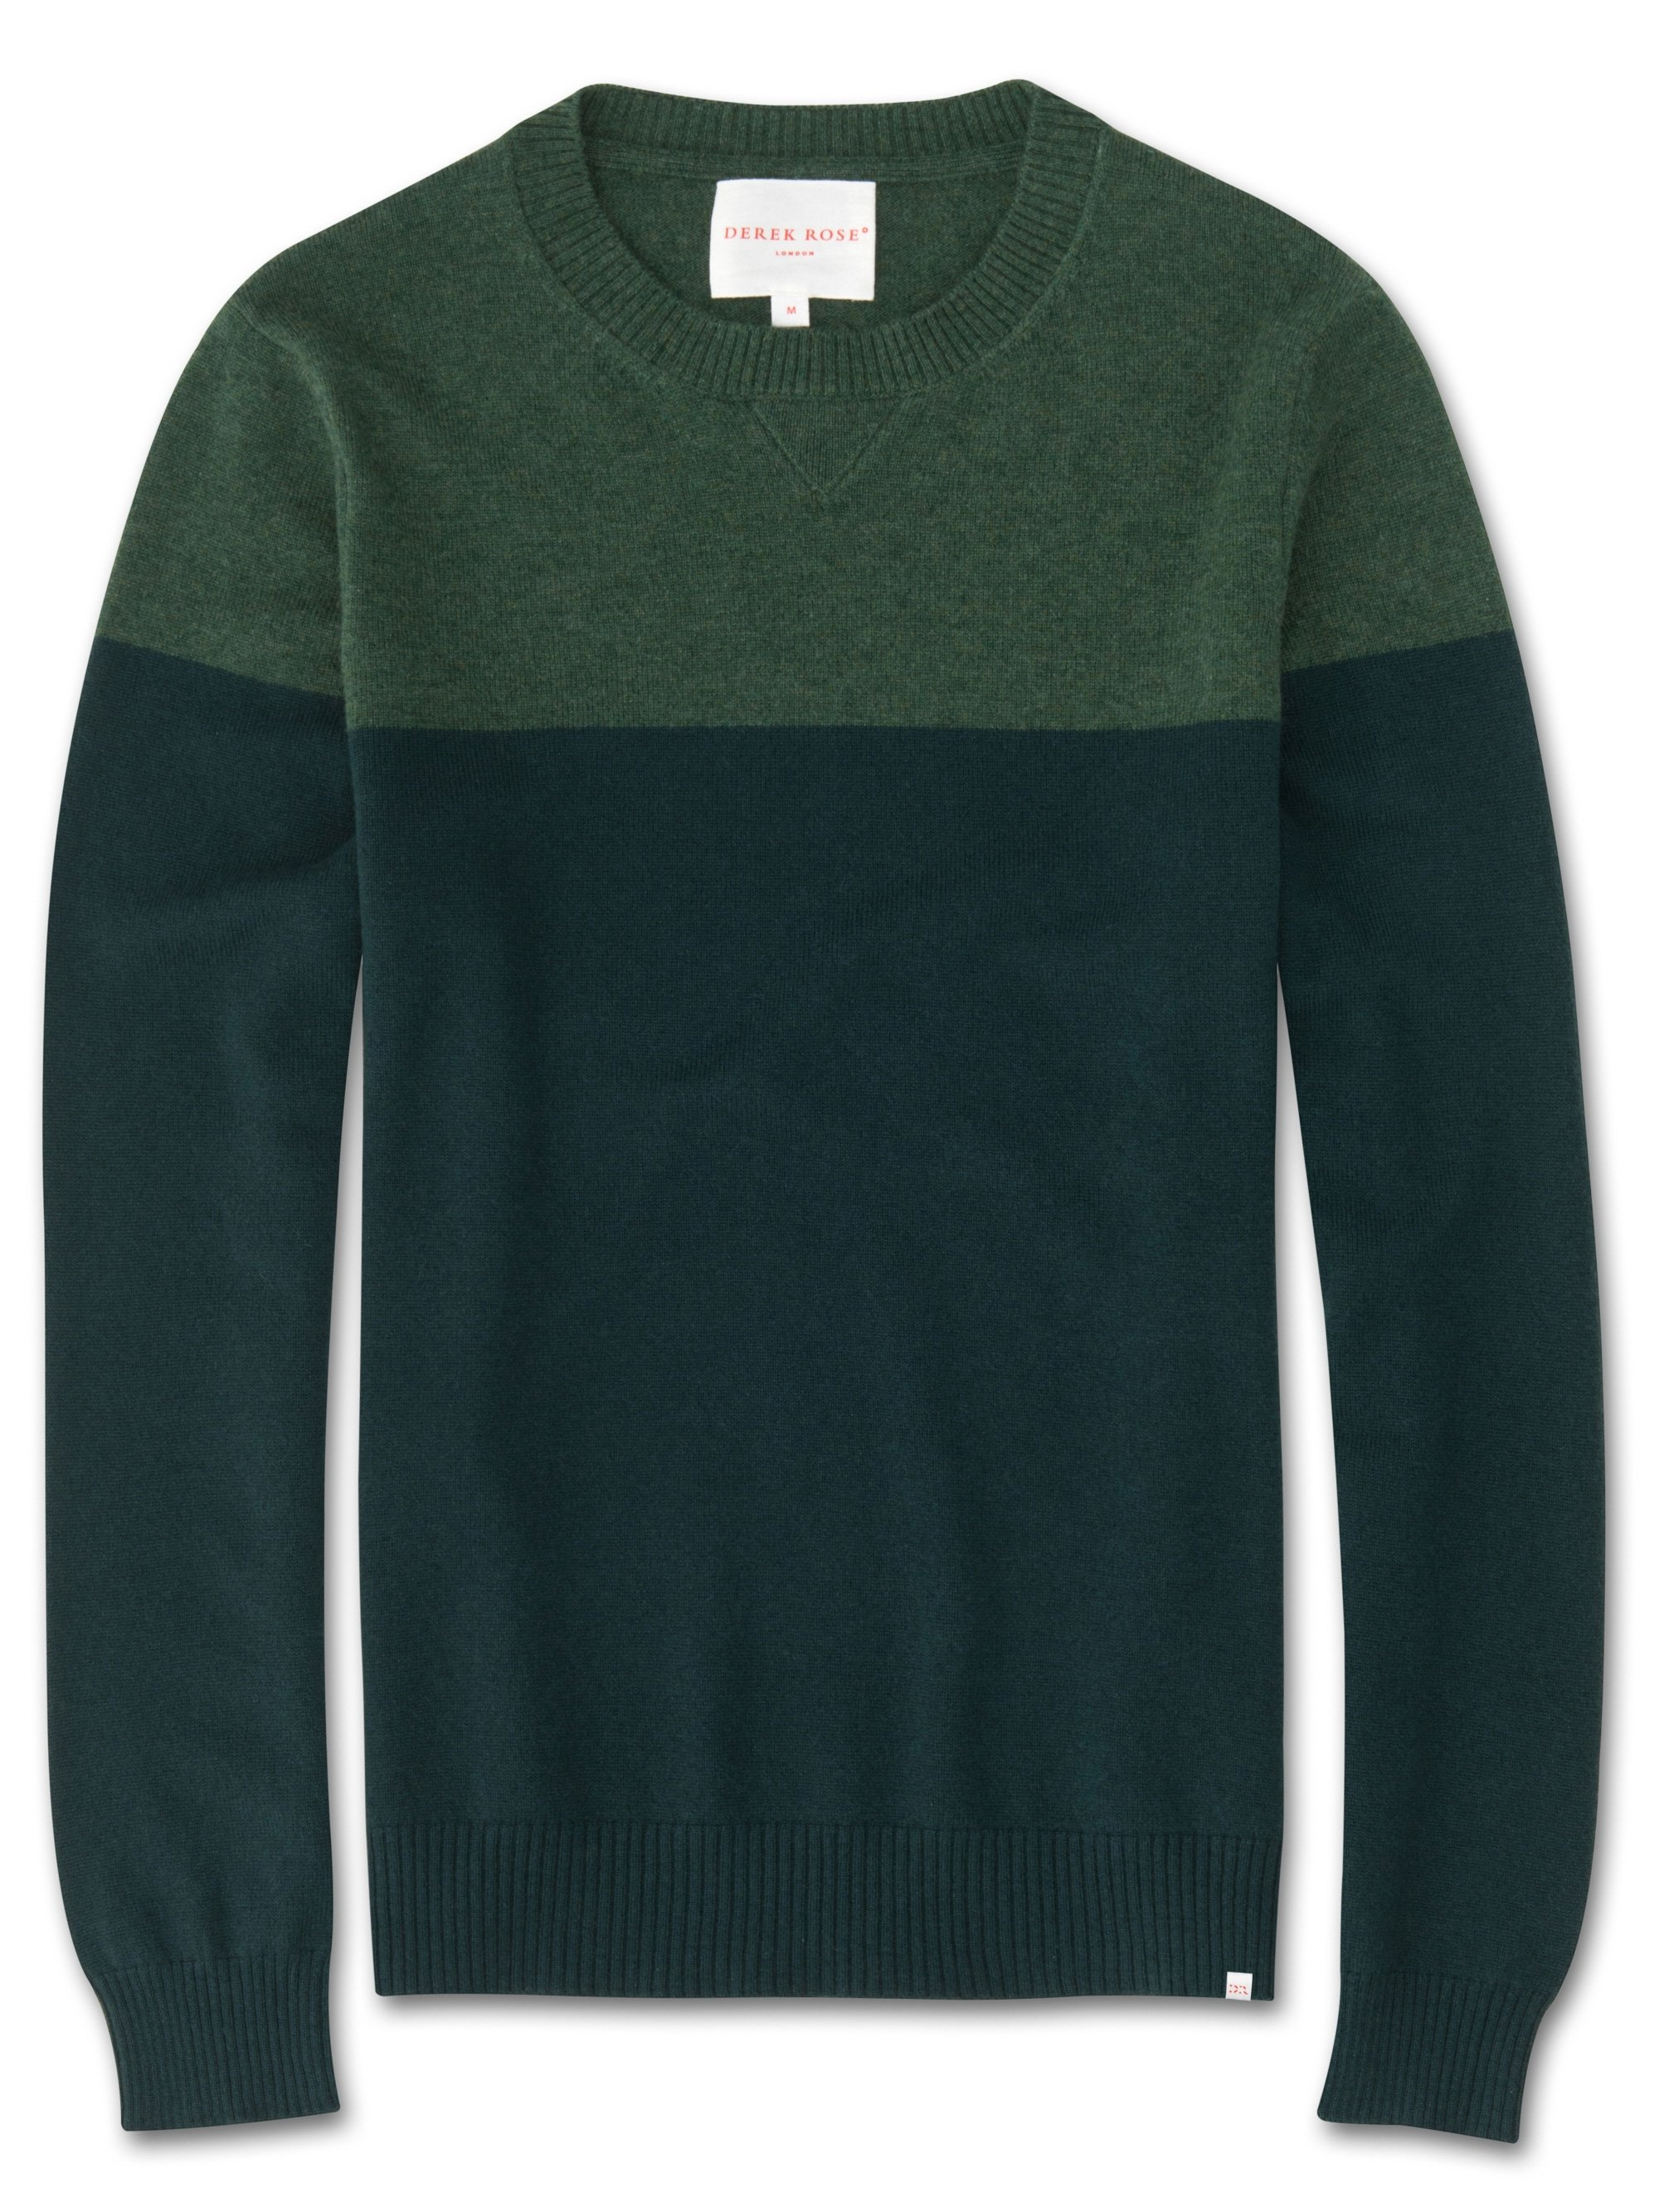 Men's Cashmere Sweater Francis Pure Cashmere Green